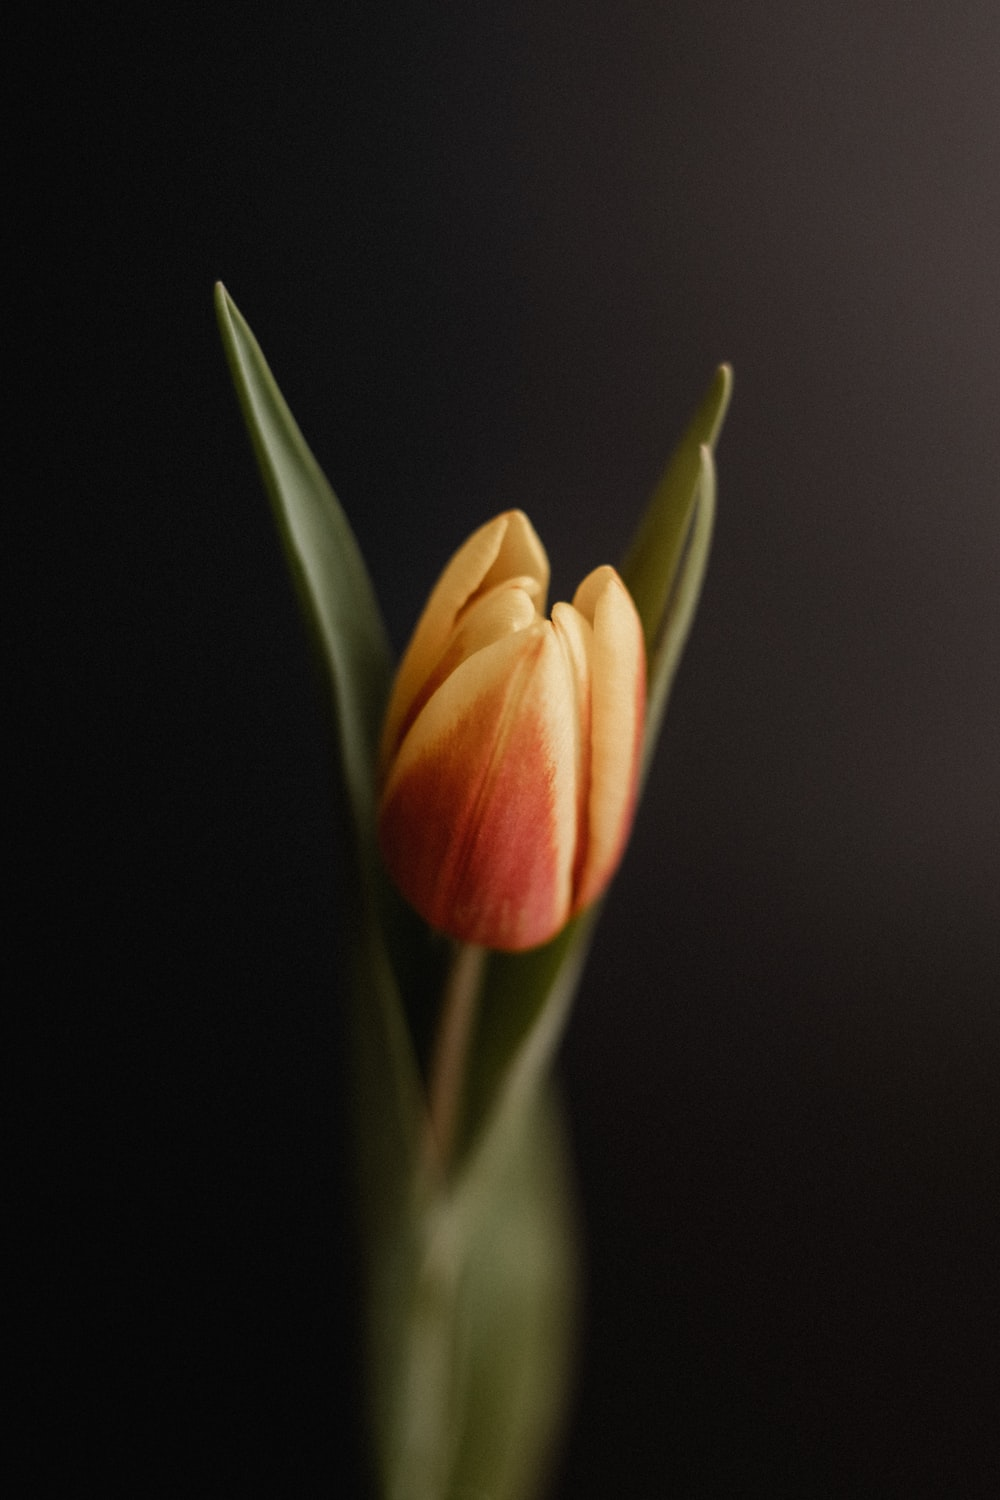 yellow and orange tulip flower photo